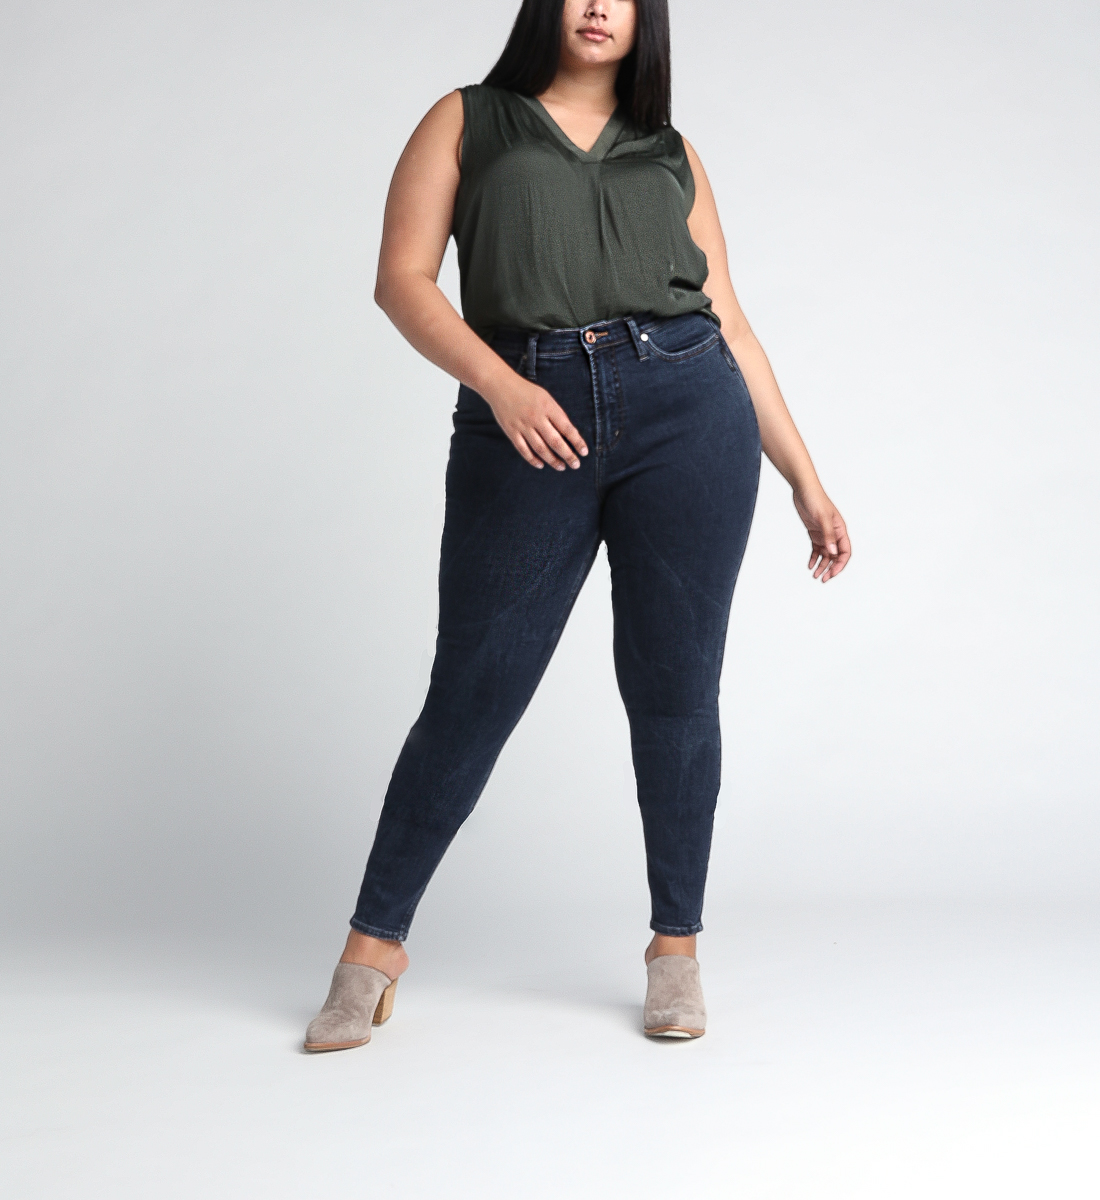 Calley Super High Rise Skinny Leg Jeans Plus Size, , hi-res